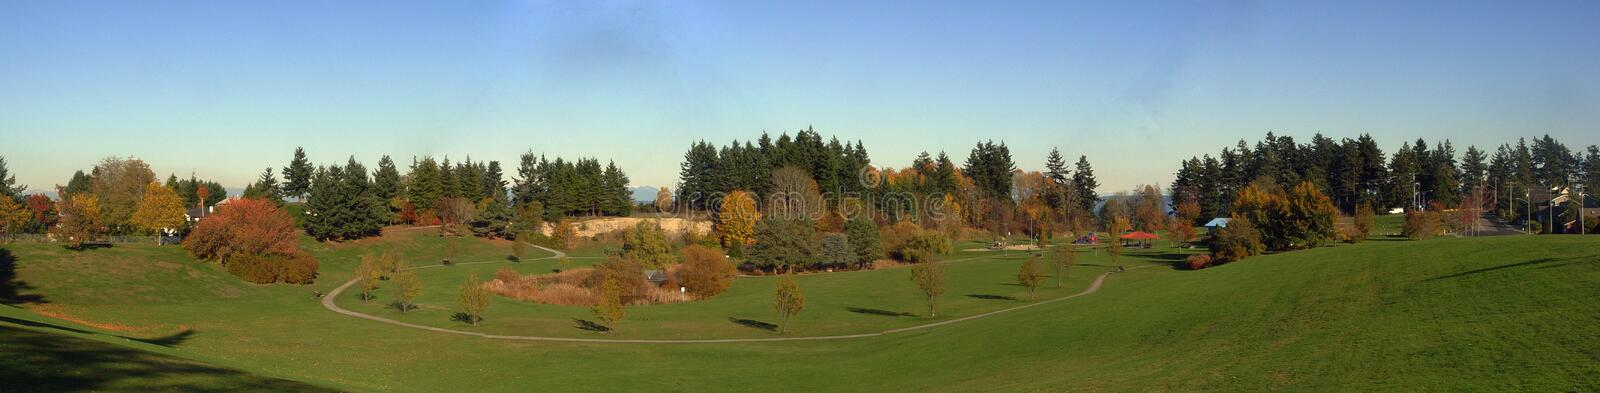 Diefenbaker park royalty free stock photos